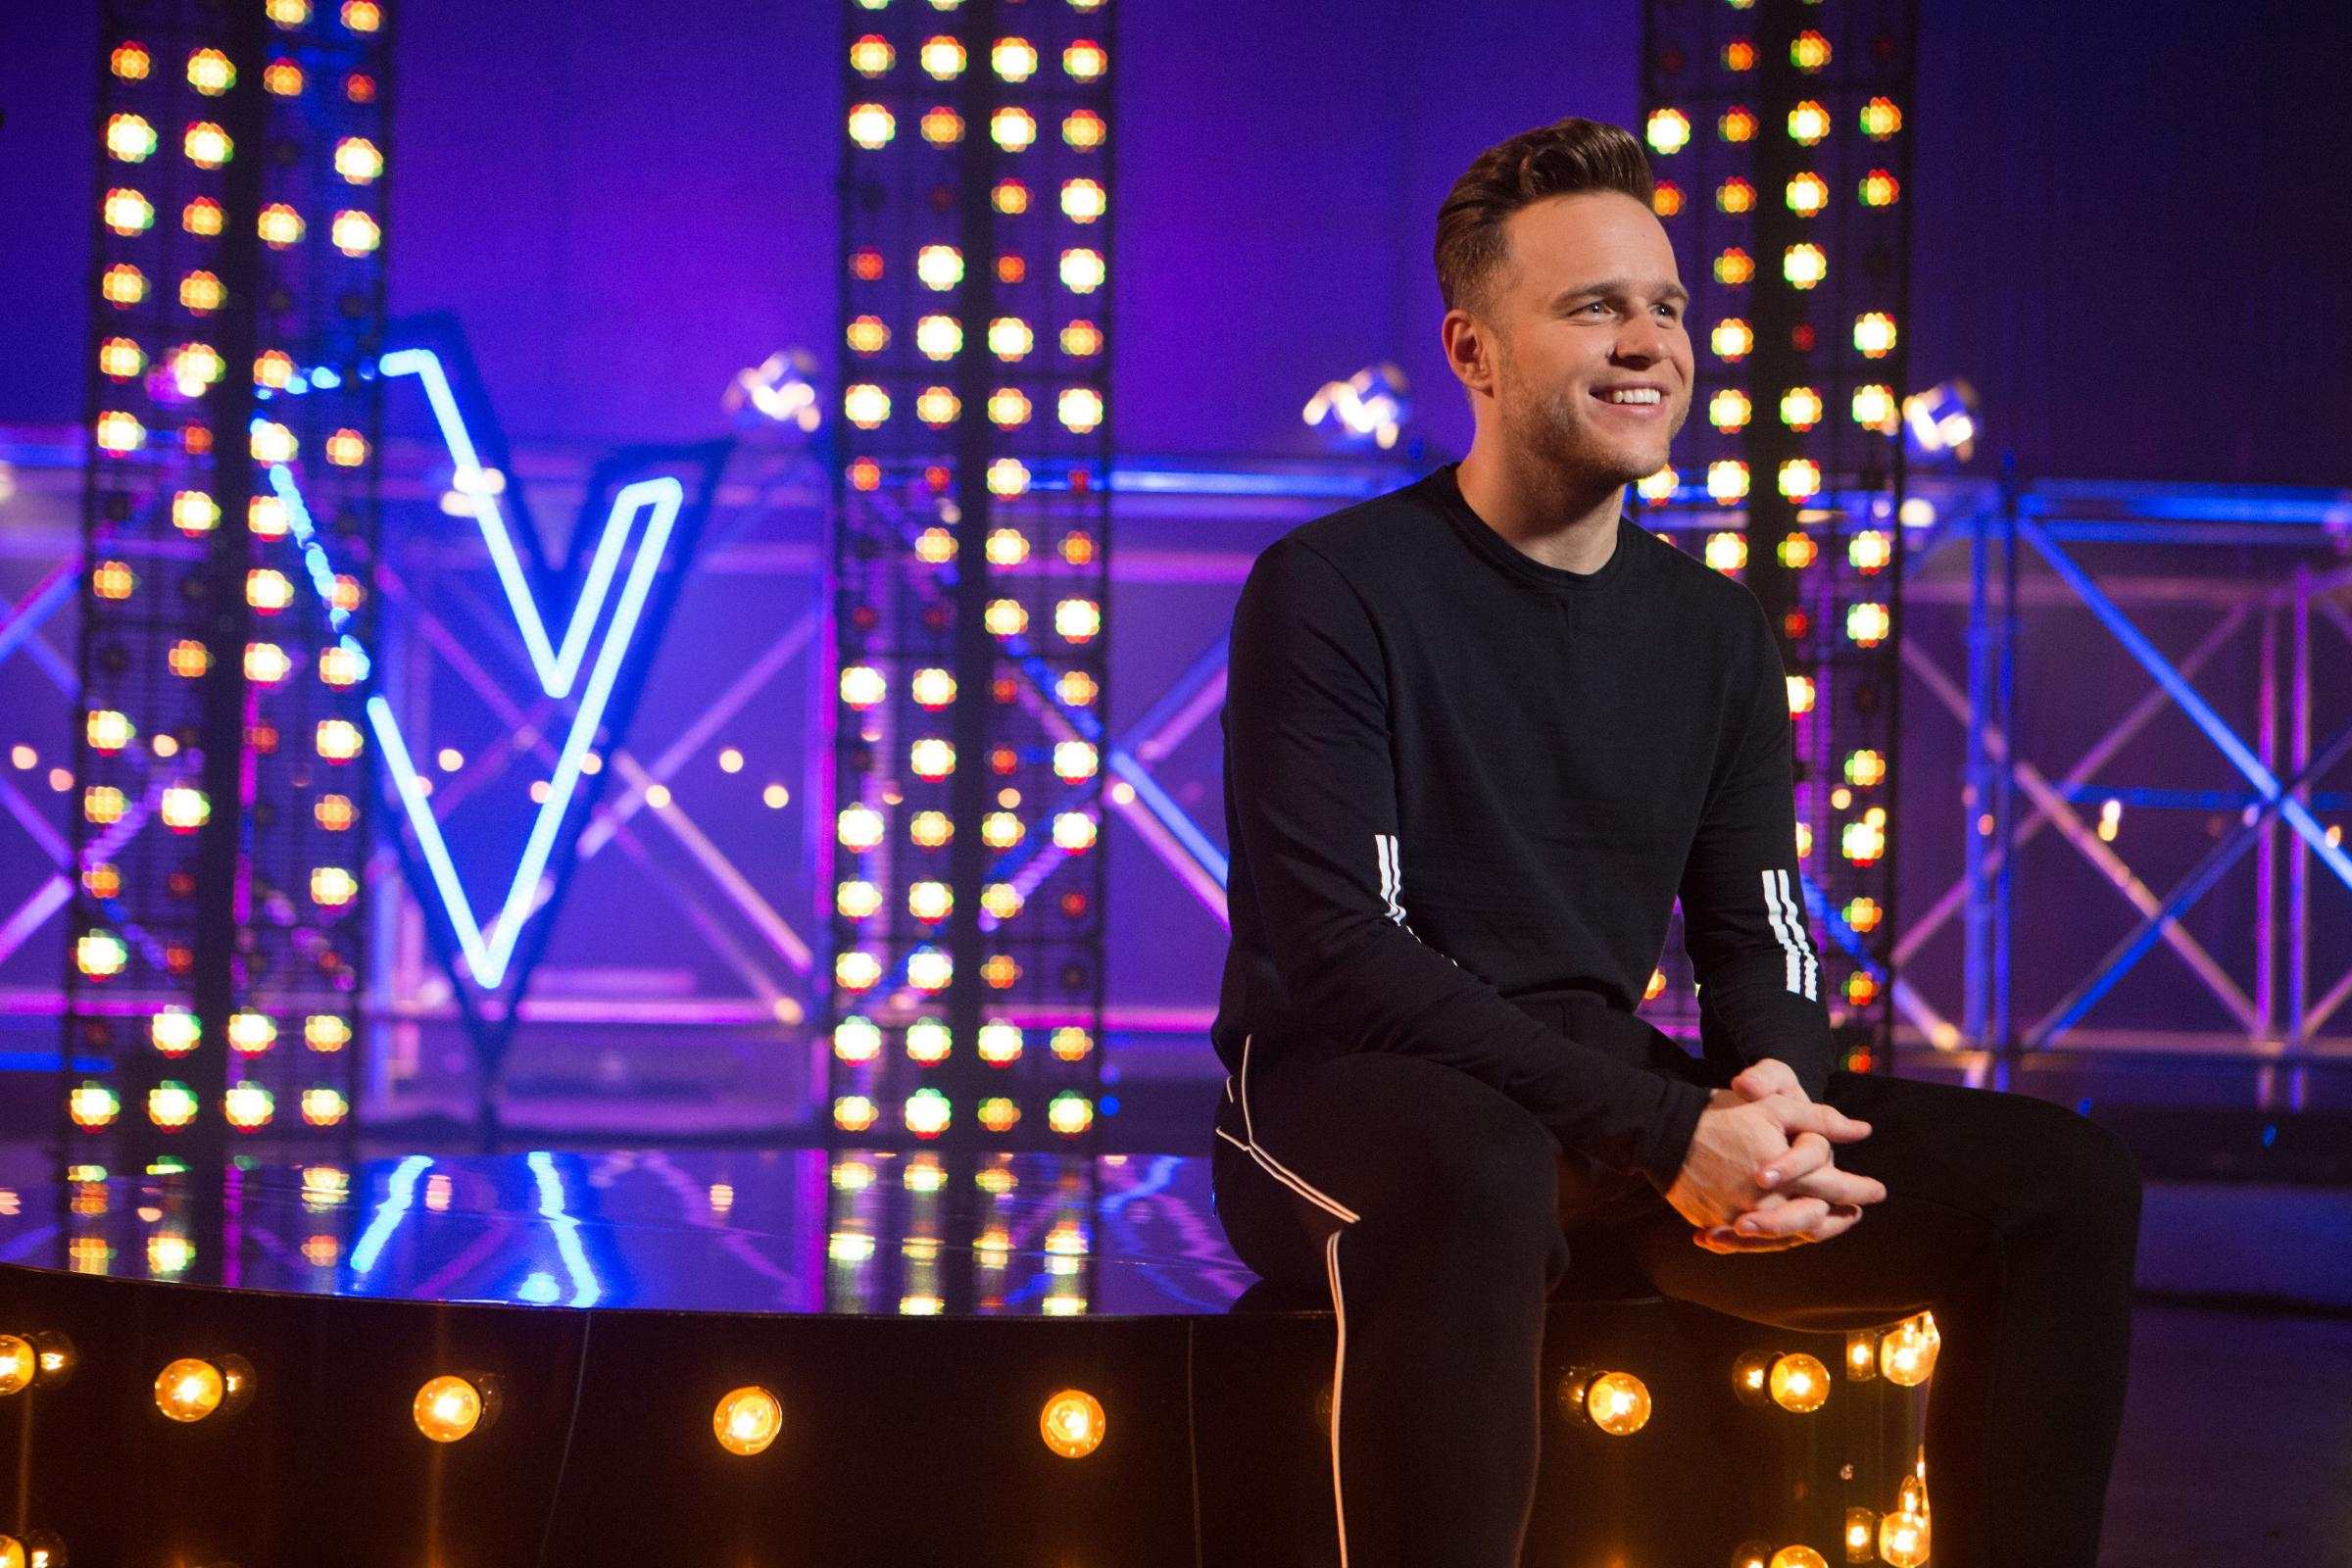 Olly Murs on The Voice UK (ITV)